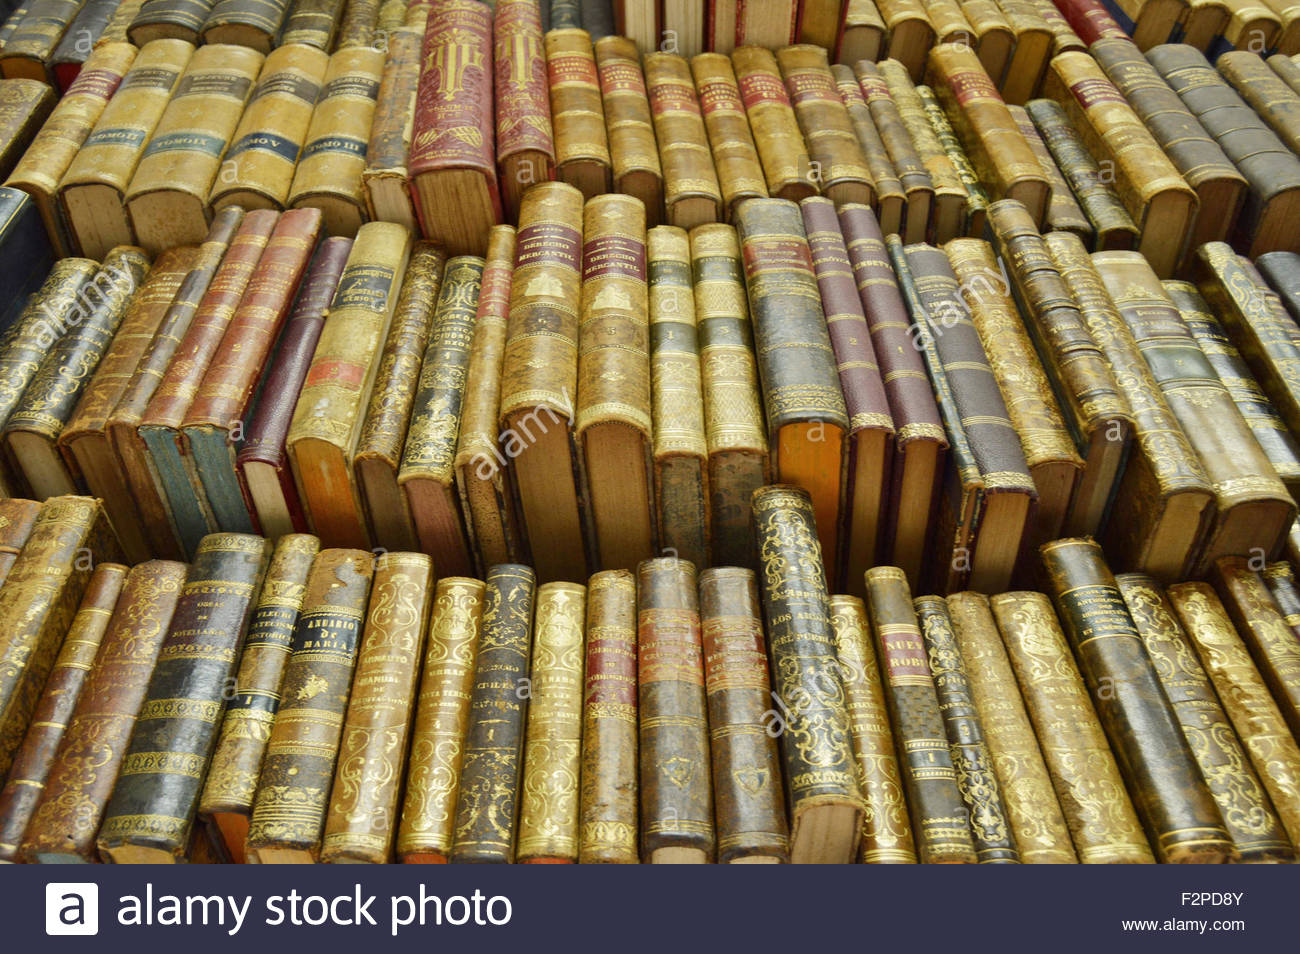 Old secondhand books displayed at bookshop in Barcelona Catalonia Spain Europe - Stock Image